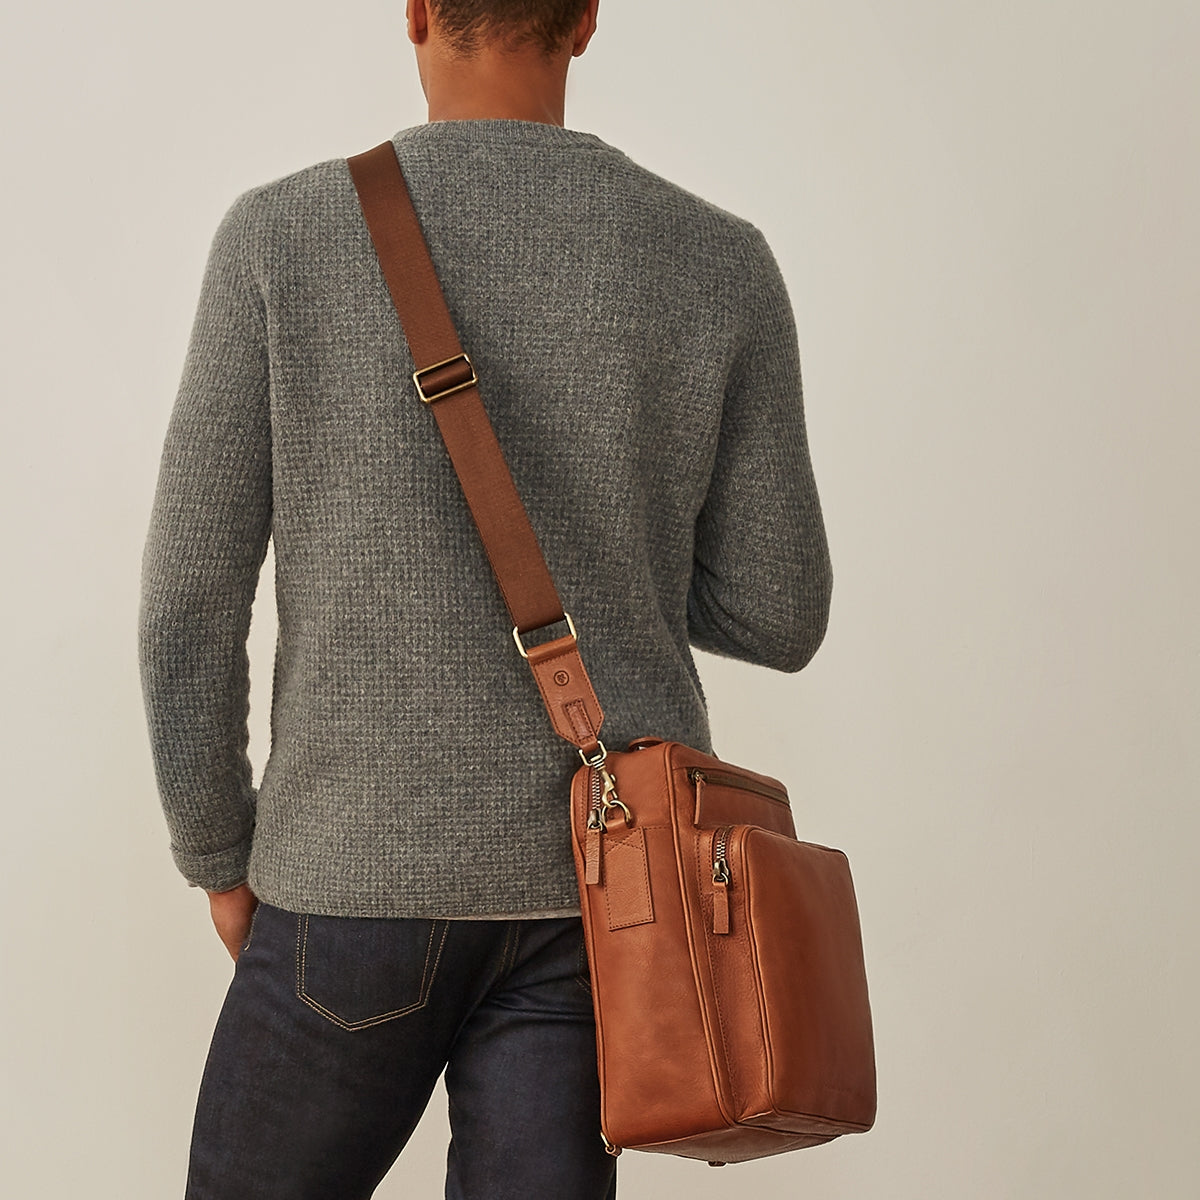 Image 10 of the 'SantinoL' Large Camel Leather Convertible Backpack Crossbody Bag For Men